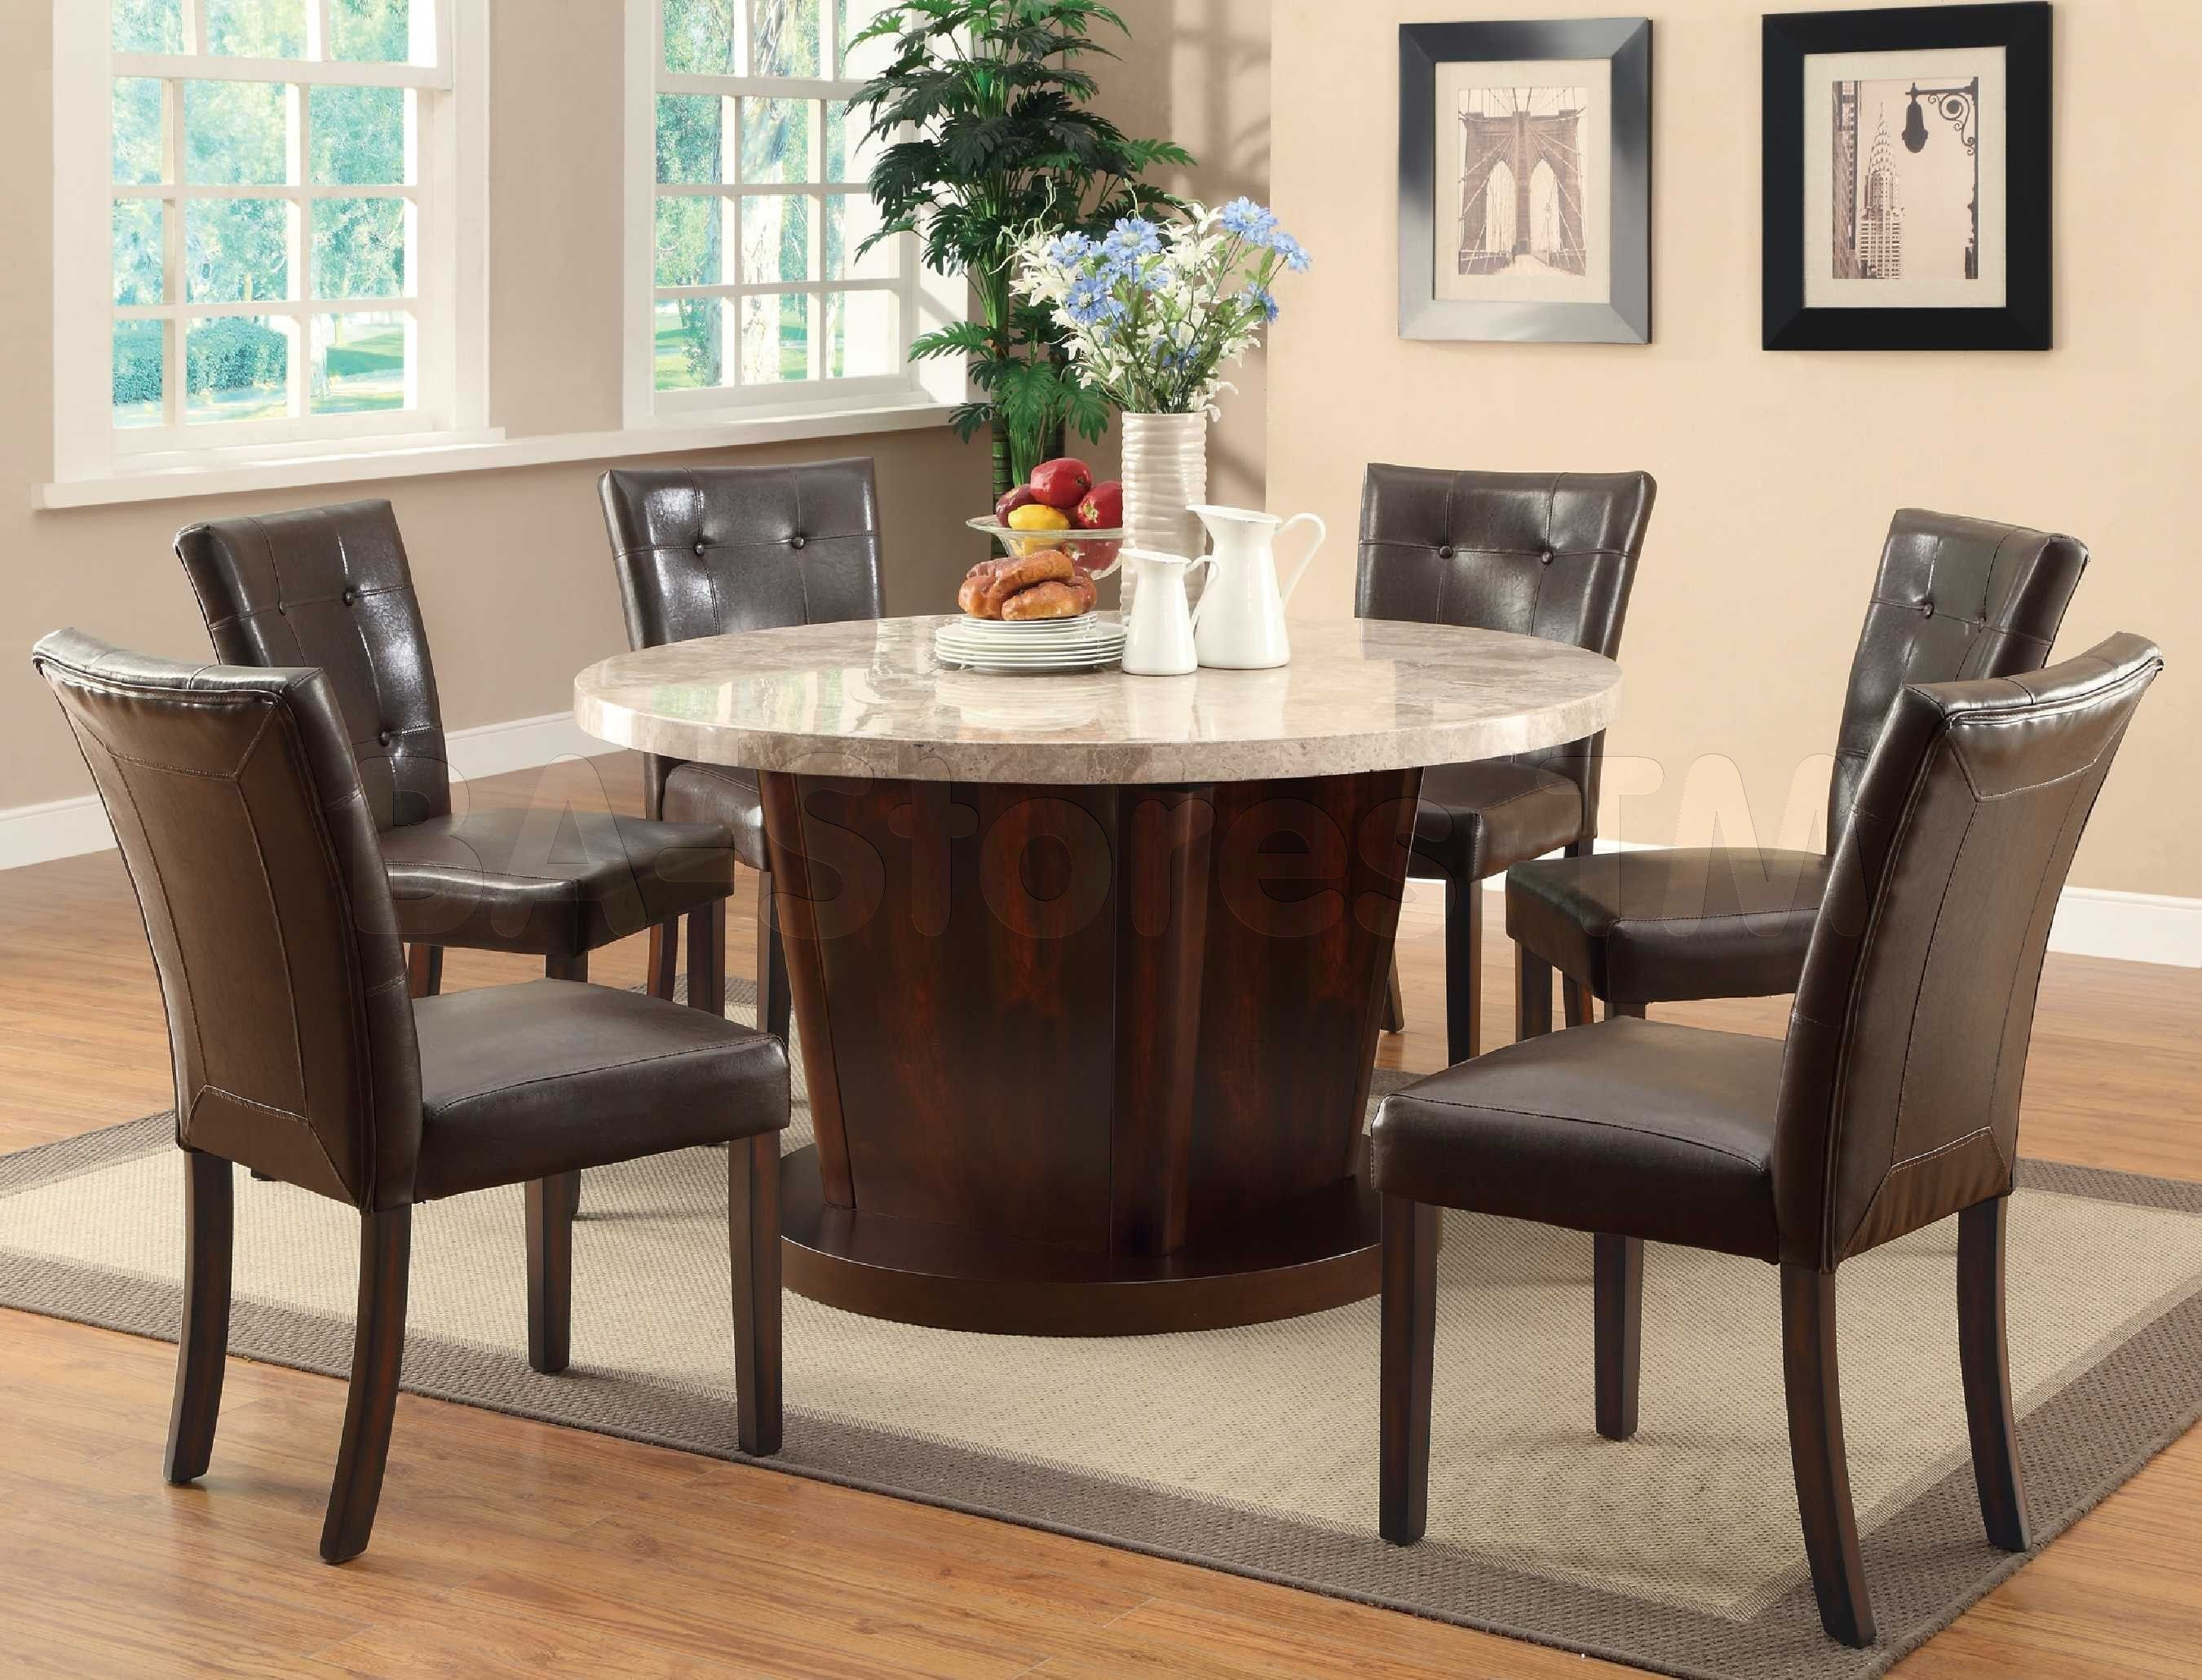 Low Cost Dining Room Tables Dishy Room Tables Cheap Prices Dining Vs Ideas Centerpiece